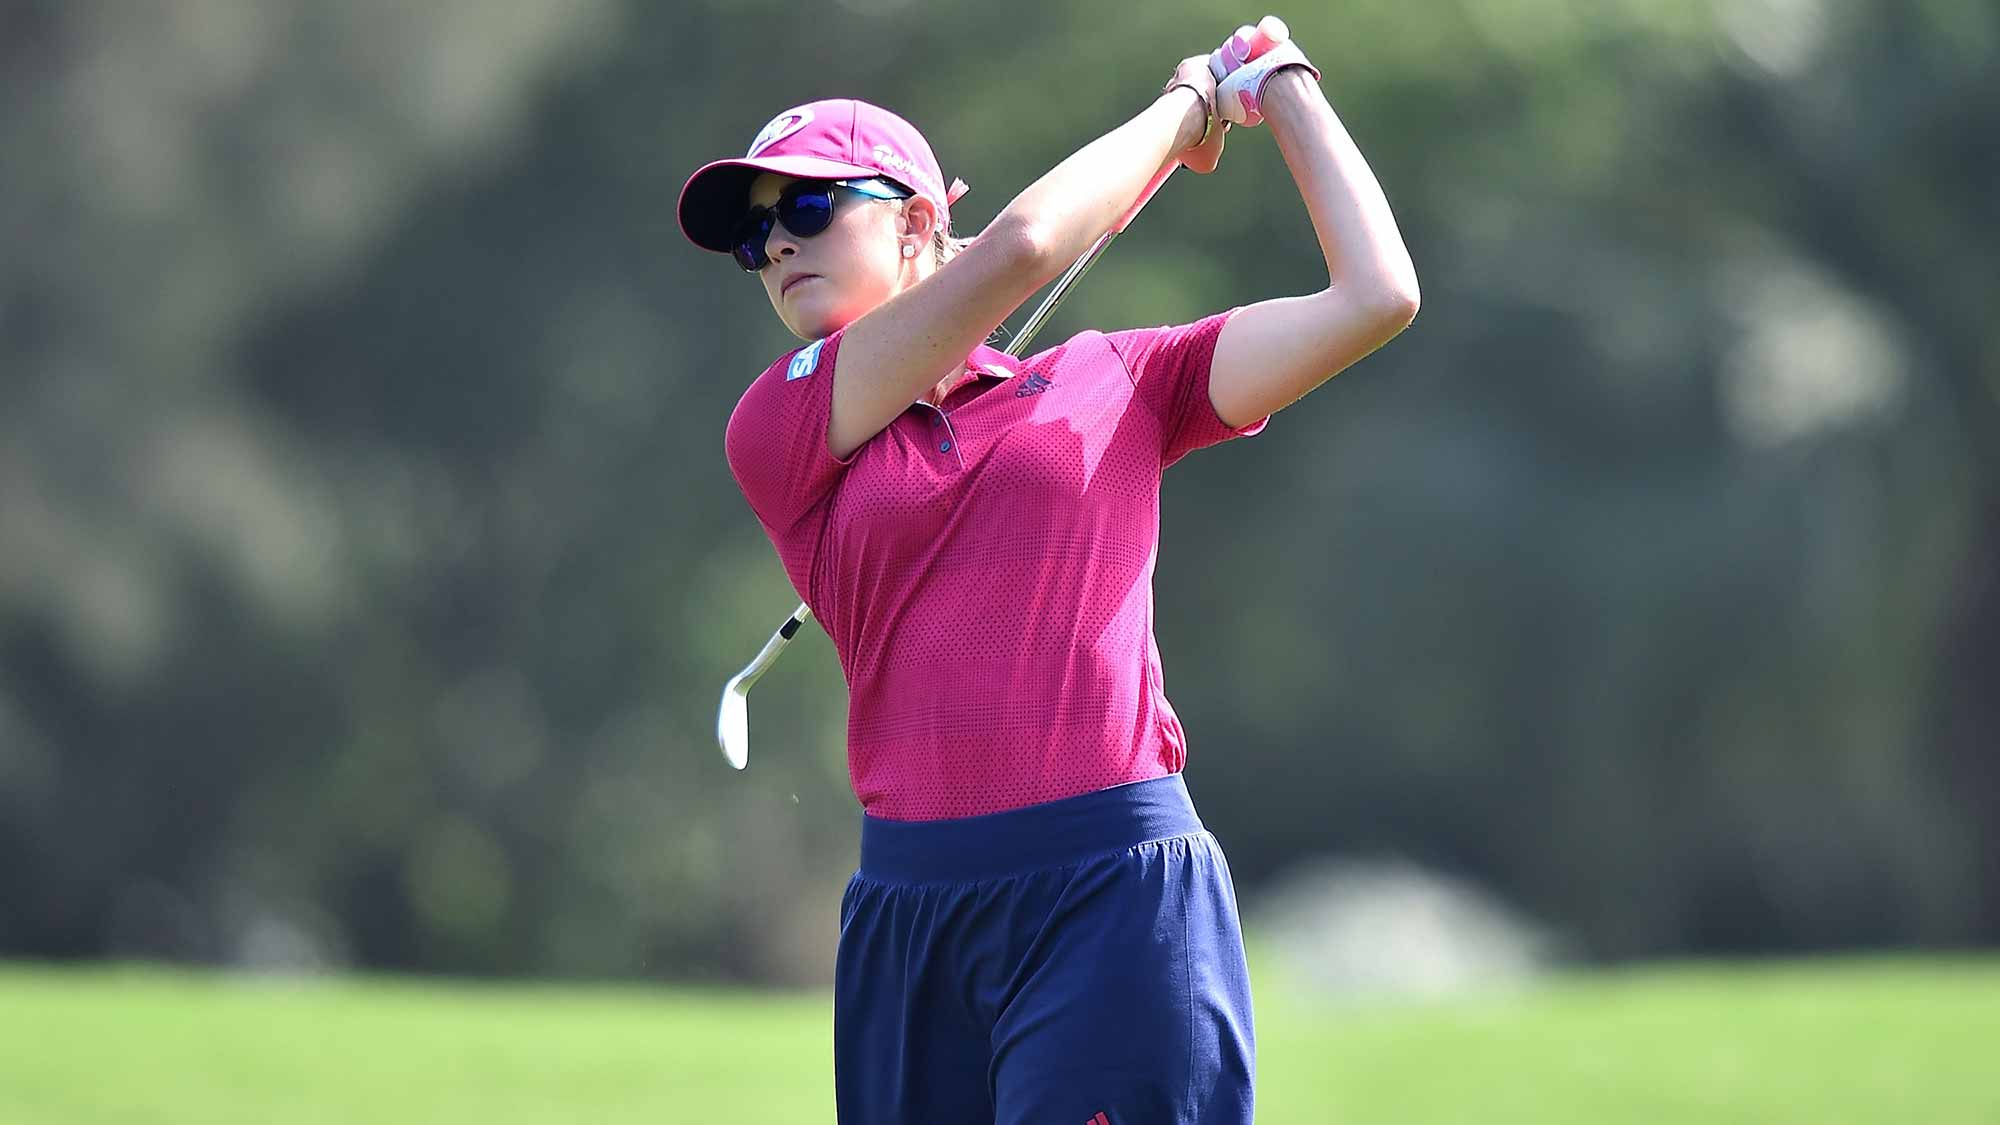 Paula Creamer of the United States plays a shot during the final round of 2015 Fubon LPGA Taiwan Championship on October 25, 2015 in Miramar Resort & Country Club